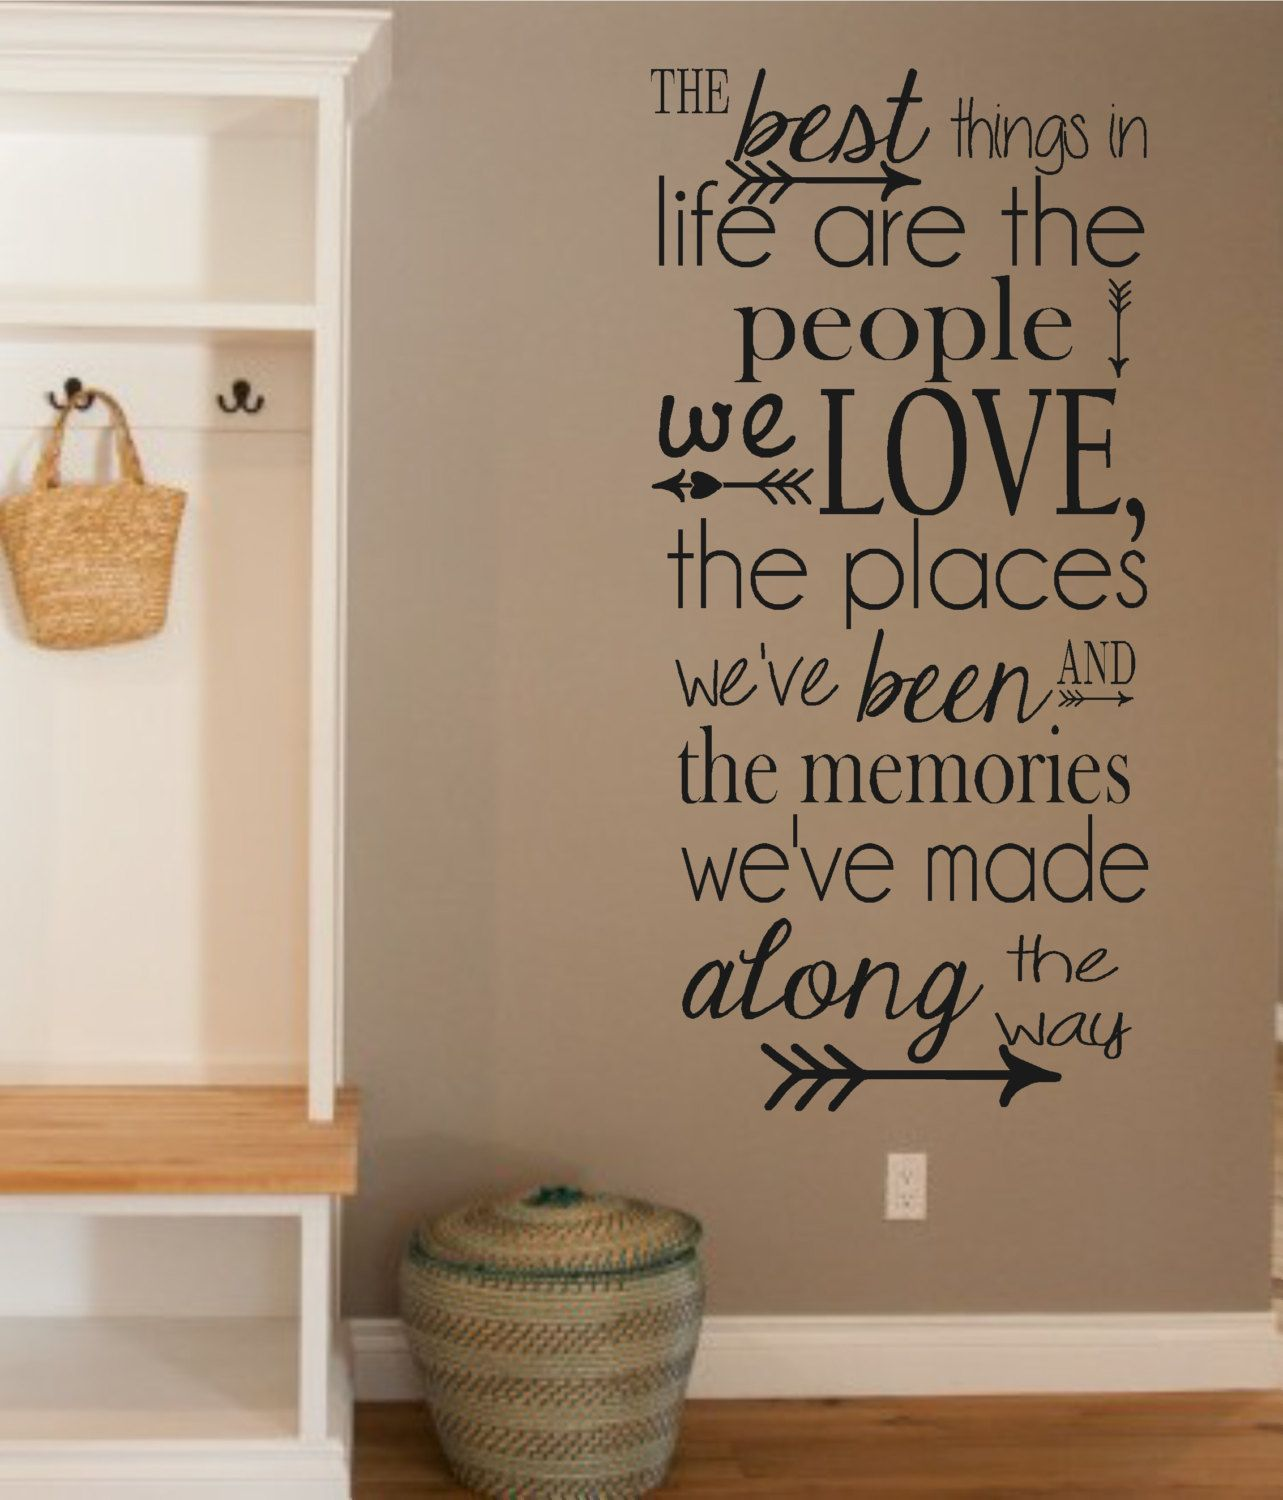 Vinyl Wall Decal The Best Things in Life People Love Memories